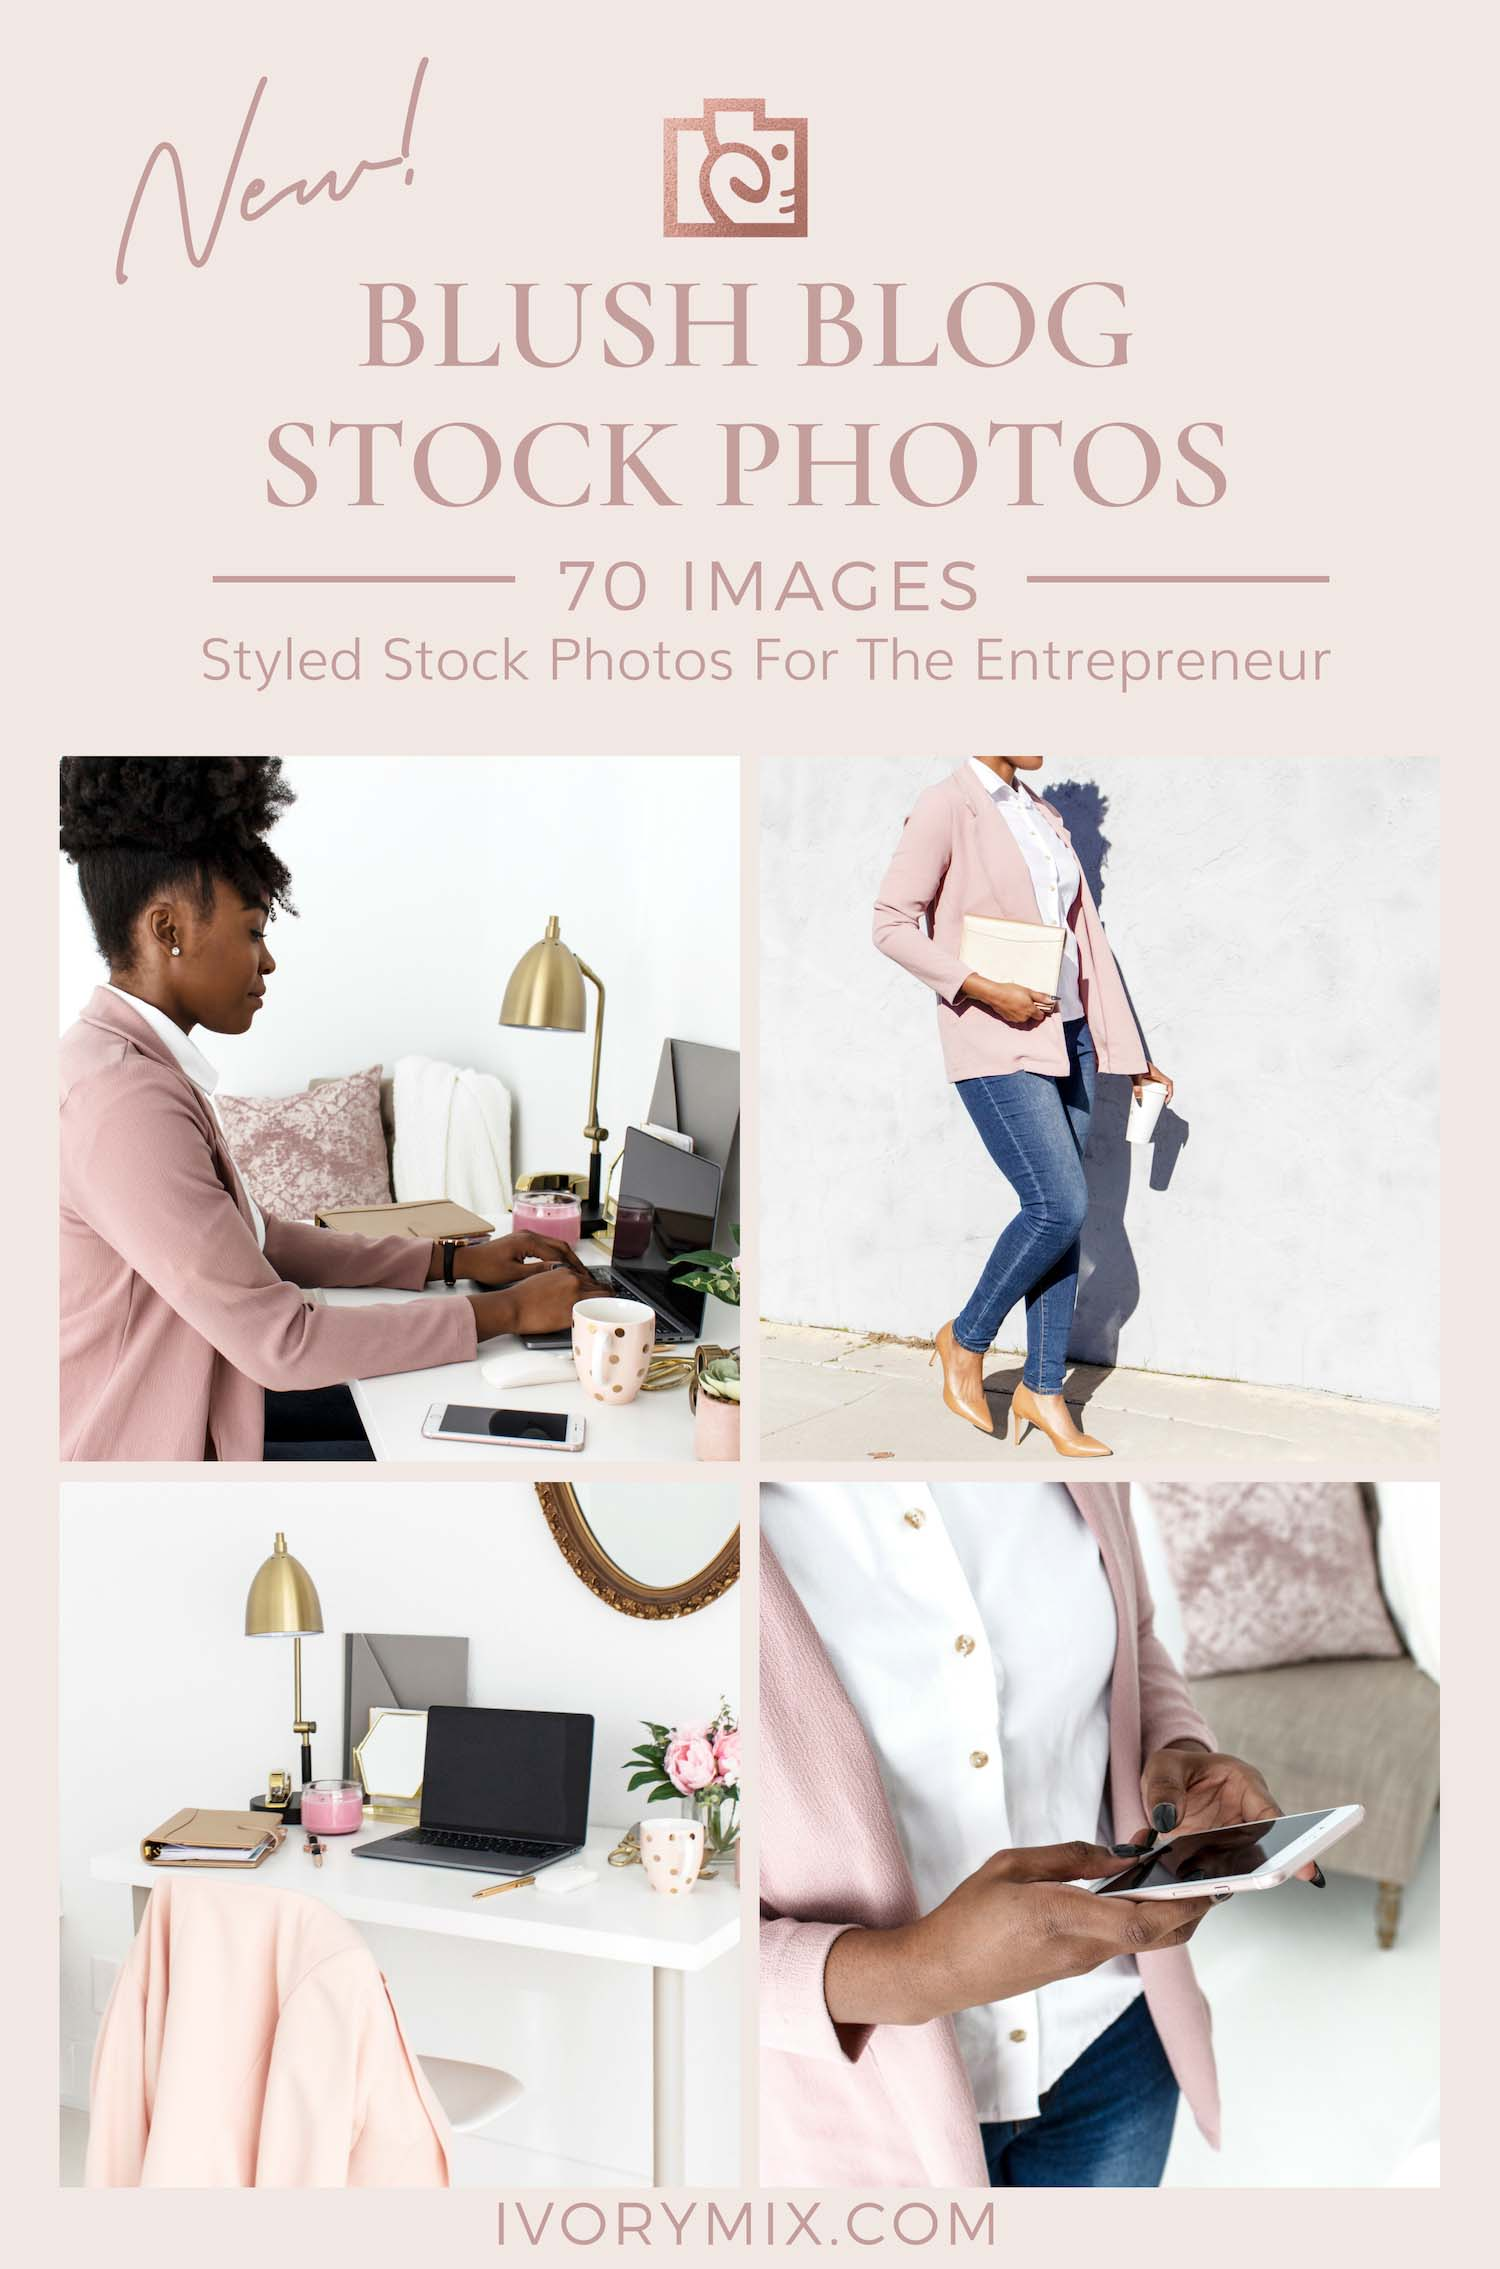 Blush Business stock photos from ivory mix